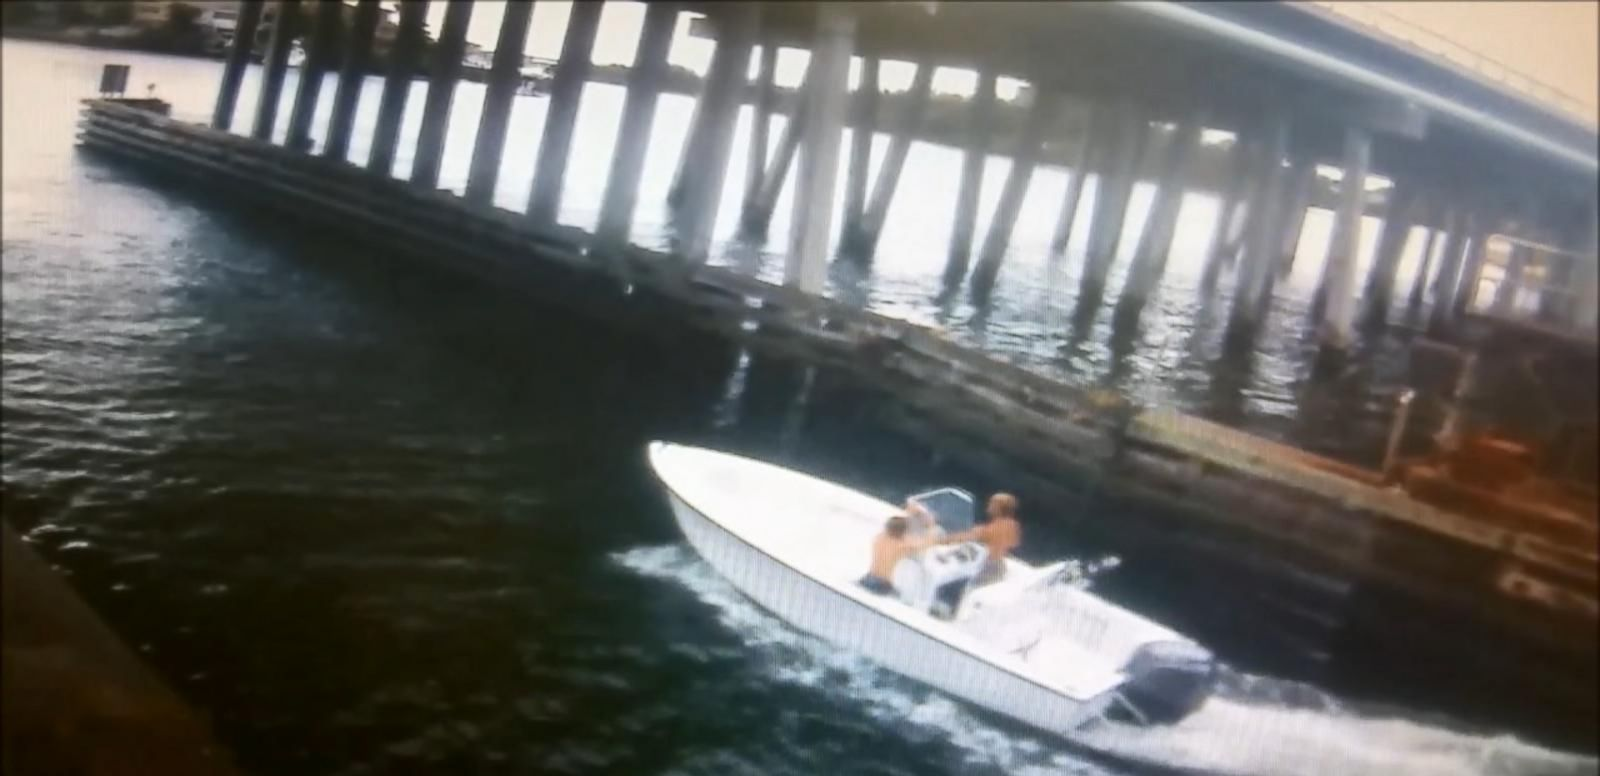 VIDEO: Surveillance Cameras Show Teens the Day They Disappeared at Sea